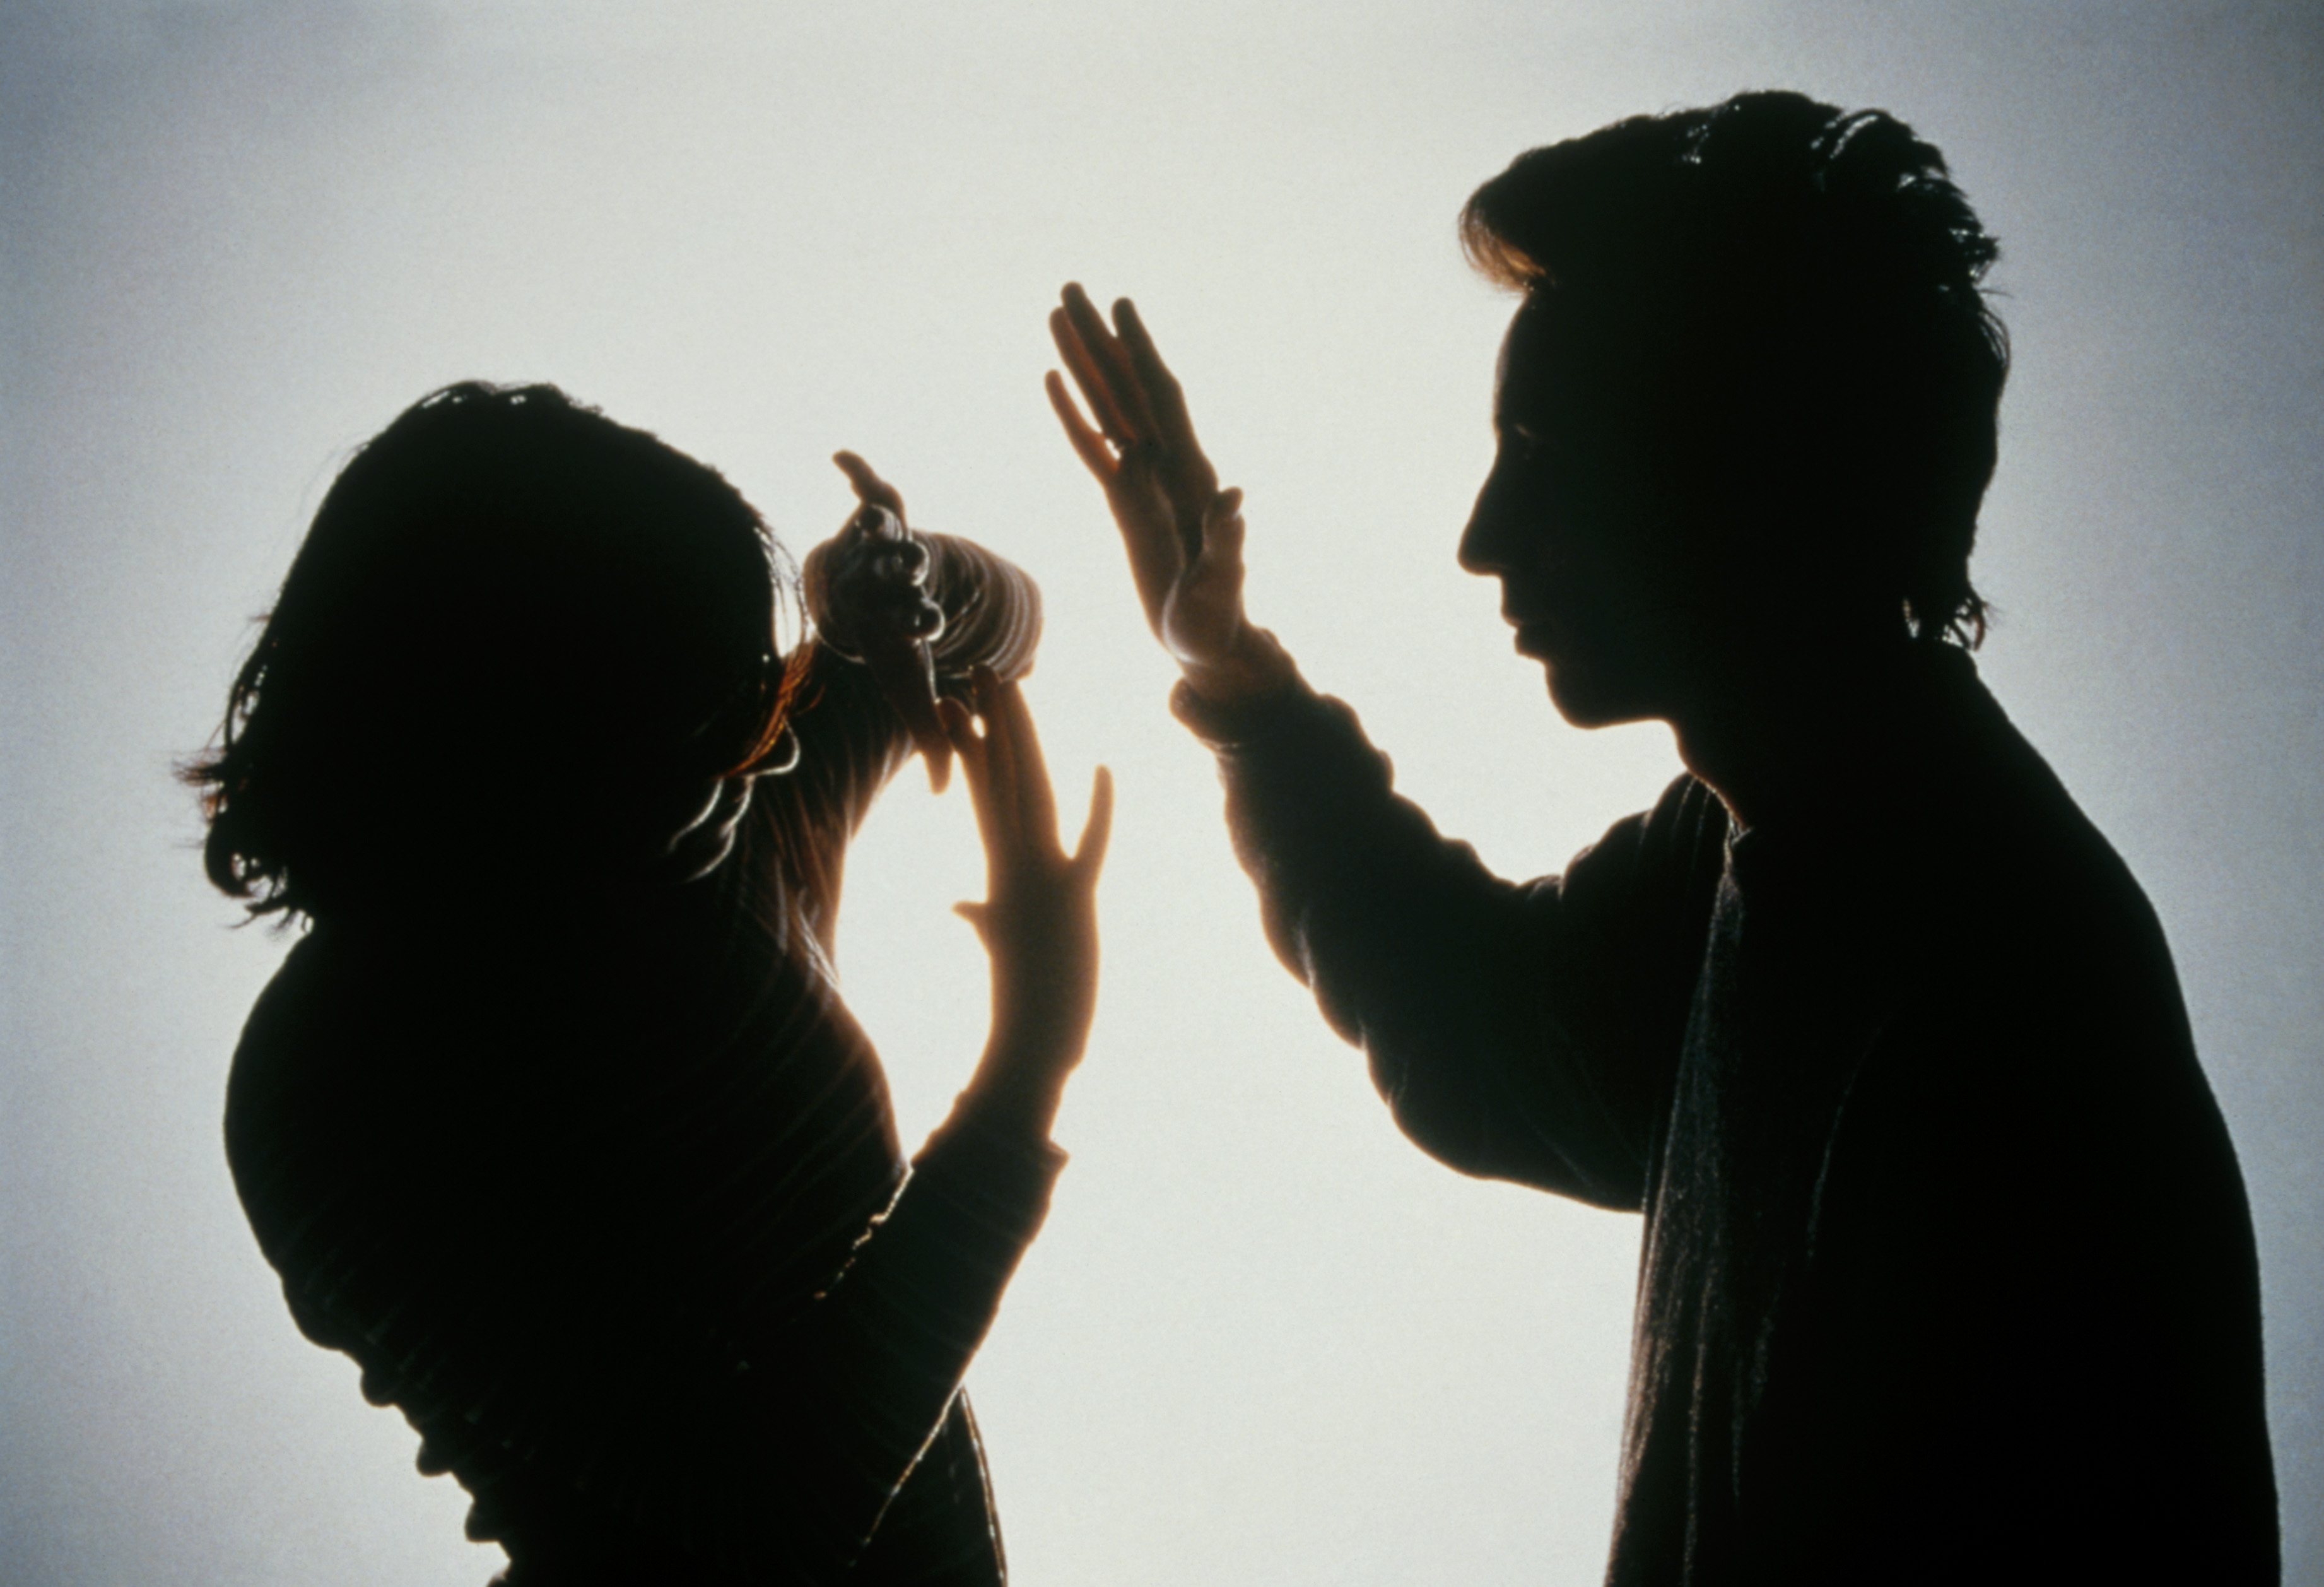 violence in the family Domestic violence can be defined to include any threatening, abusive, or violent behavior in the home, including between adult children and other adult family members.